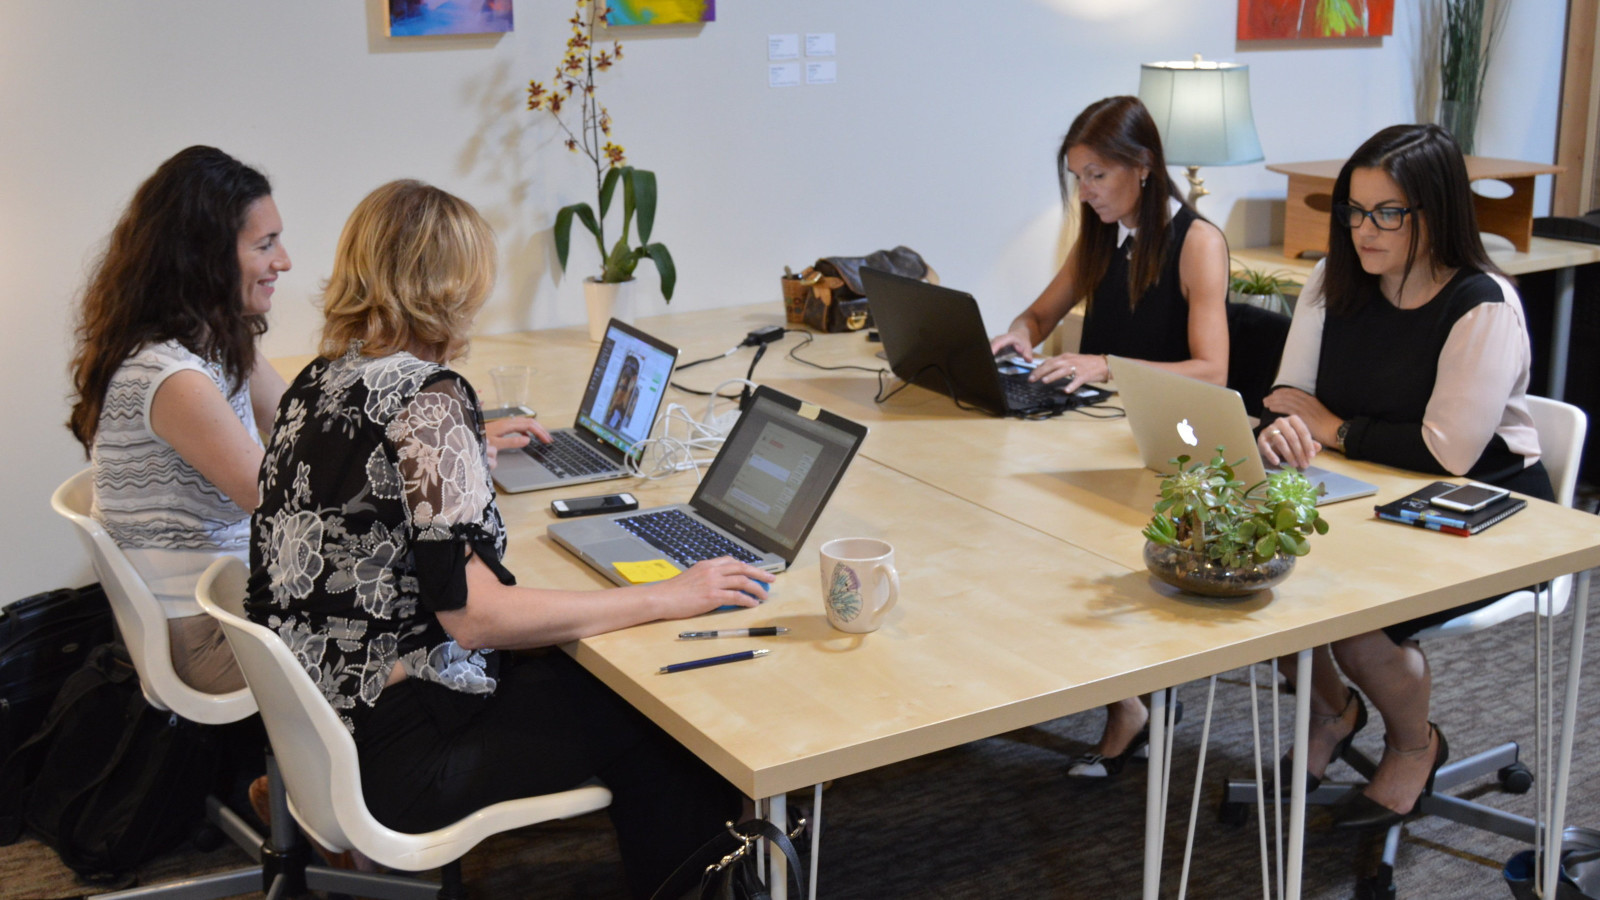 Temecula commuters: new coworking space hopes you'll skip the drive